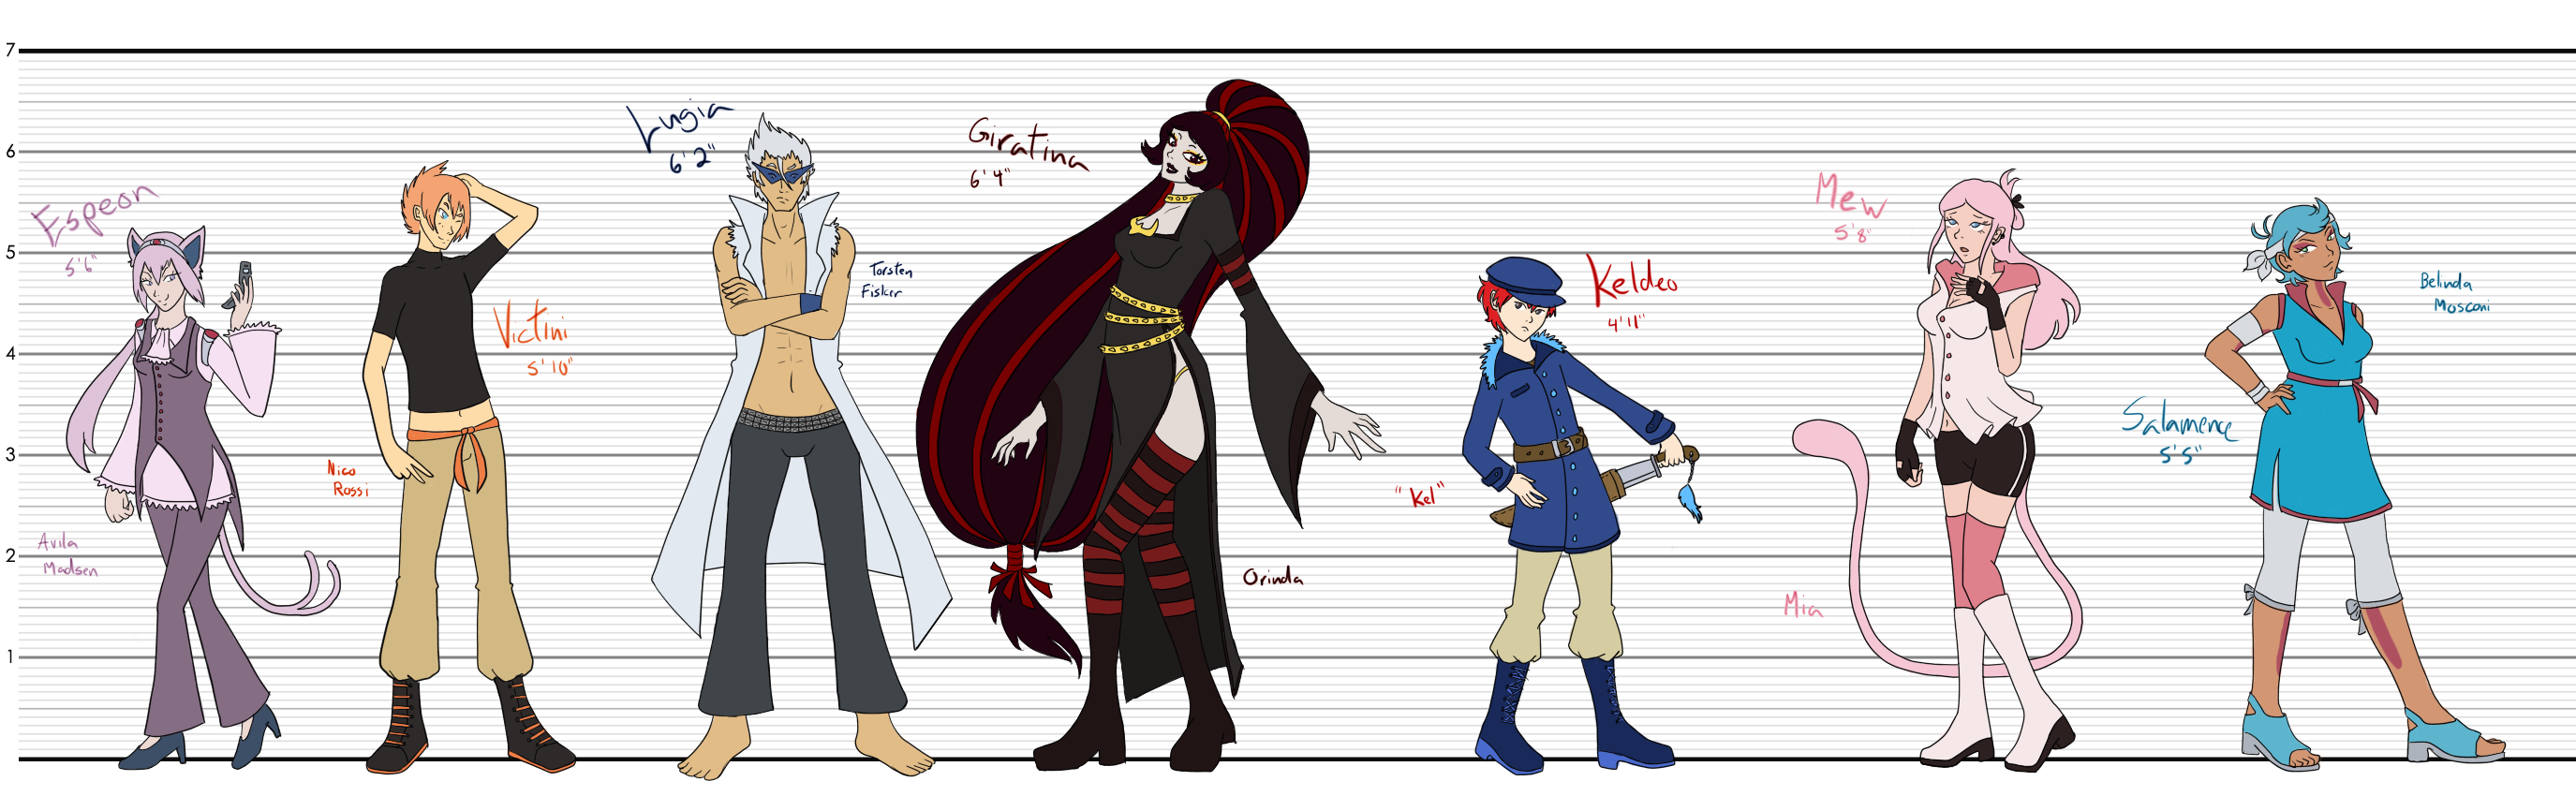 Anime Characters 153 Cm : Eksperi height chart by mintmouse on deviantart